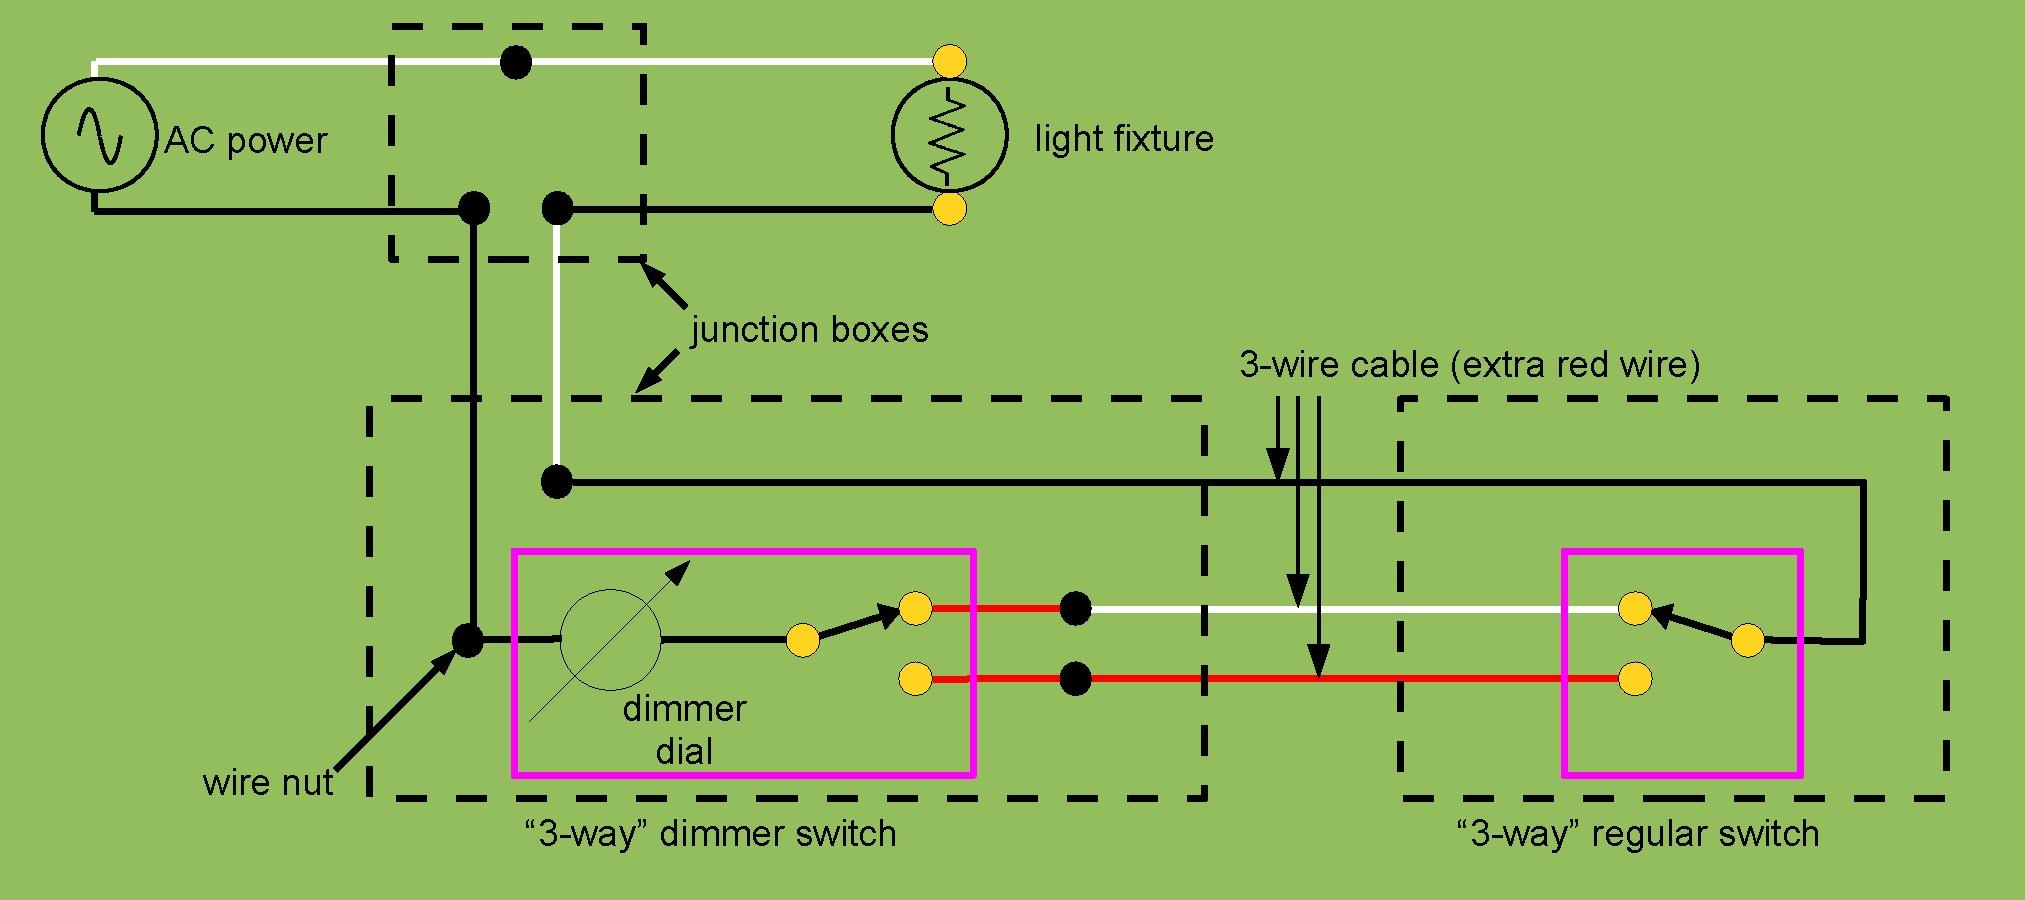 File:3-Way Dimmer Switch Wiring.pdf - Wikimedia Commons - 3 Way Switch Wiring Diagram Pdf